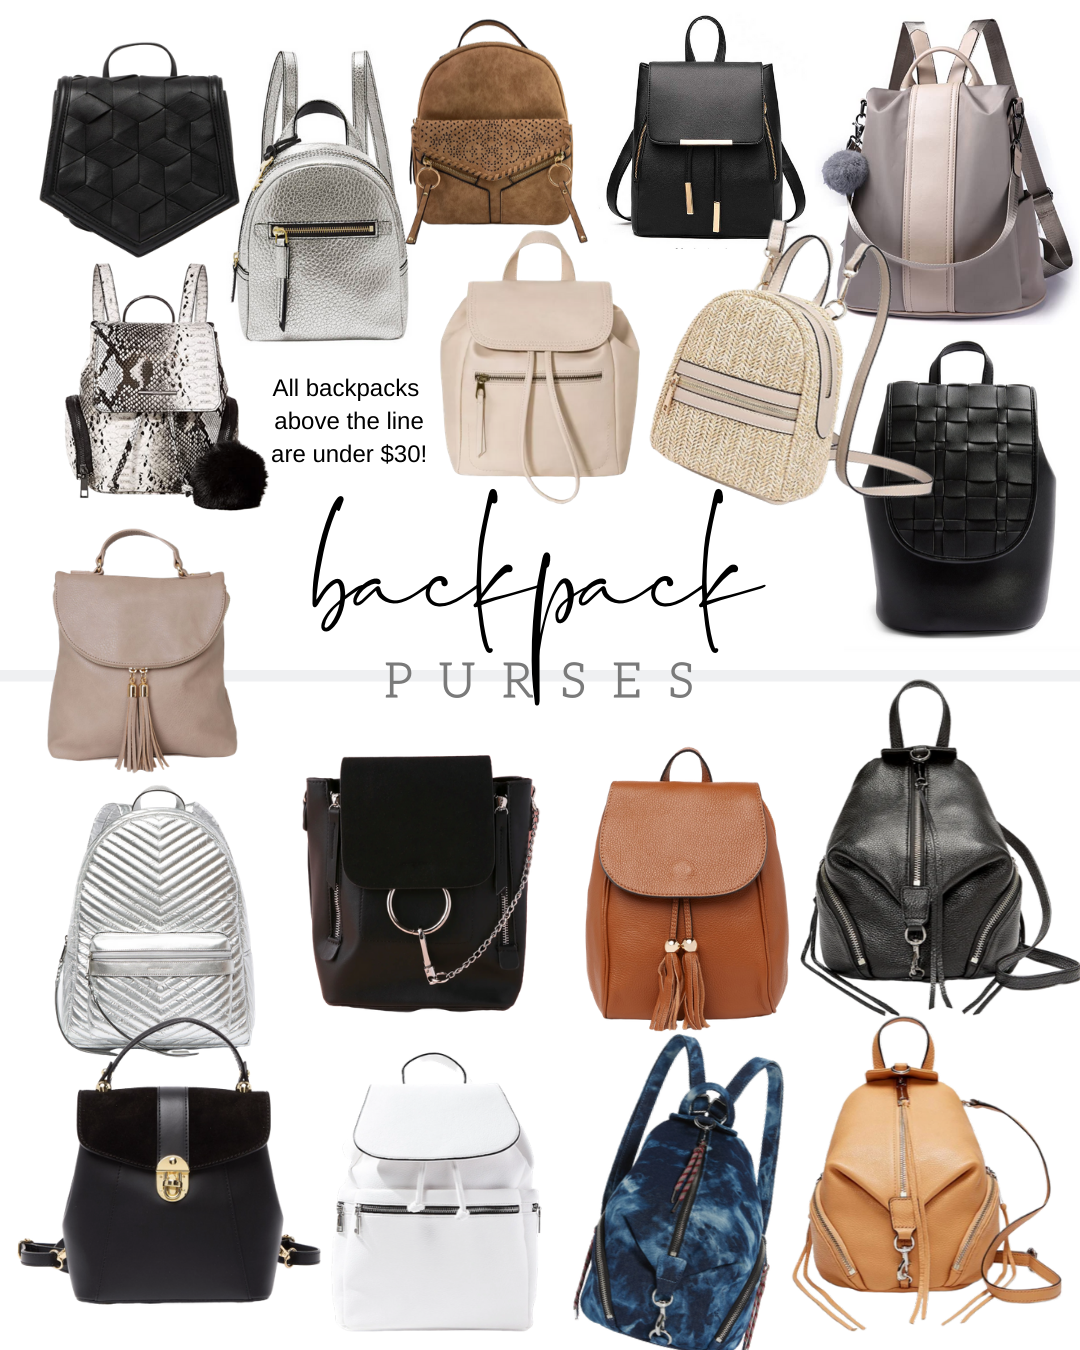 Backpack mini purses rebecca minkoff